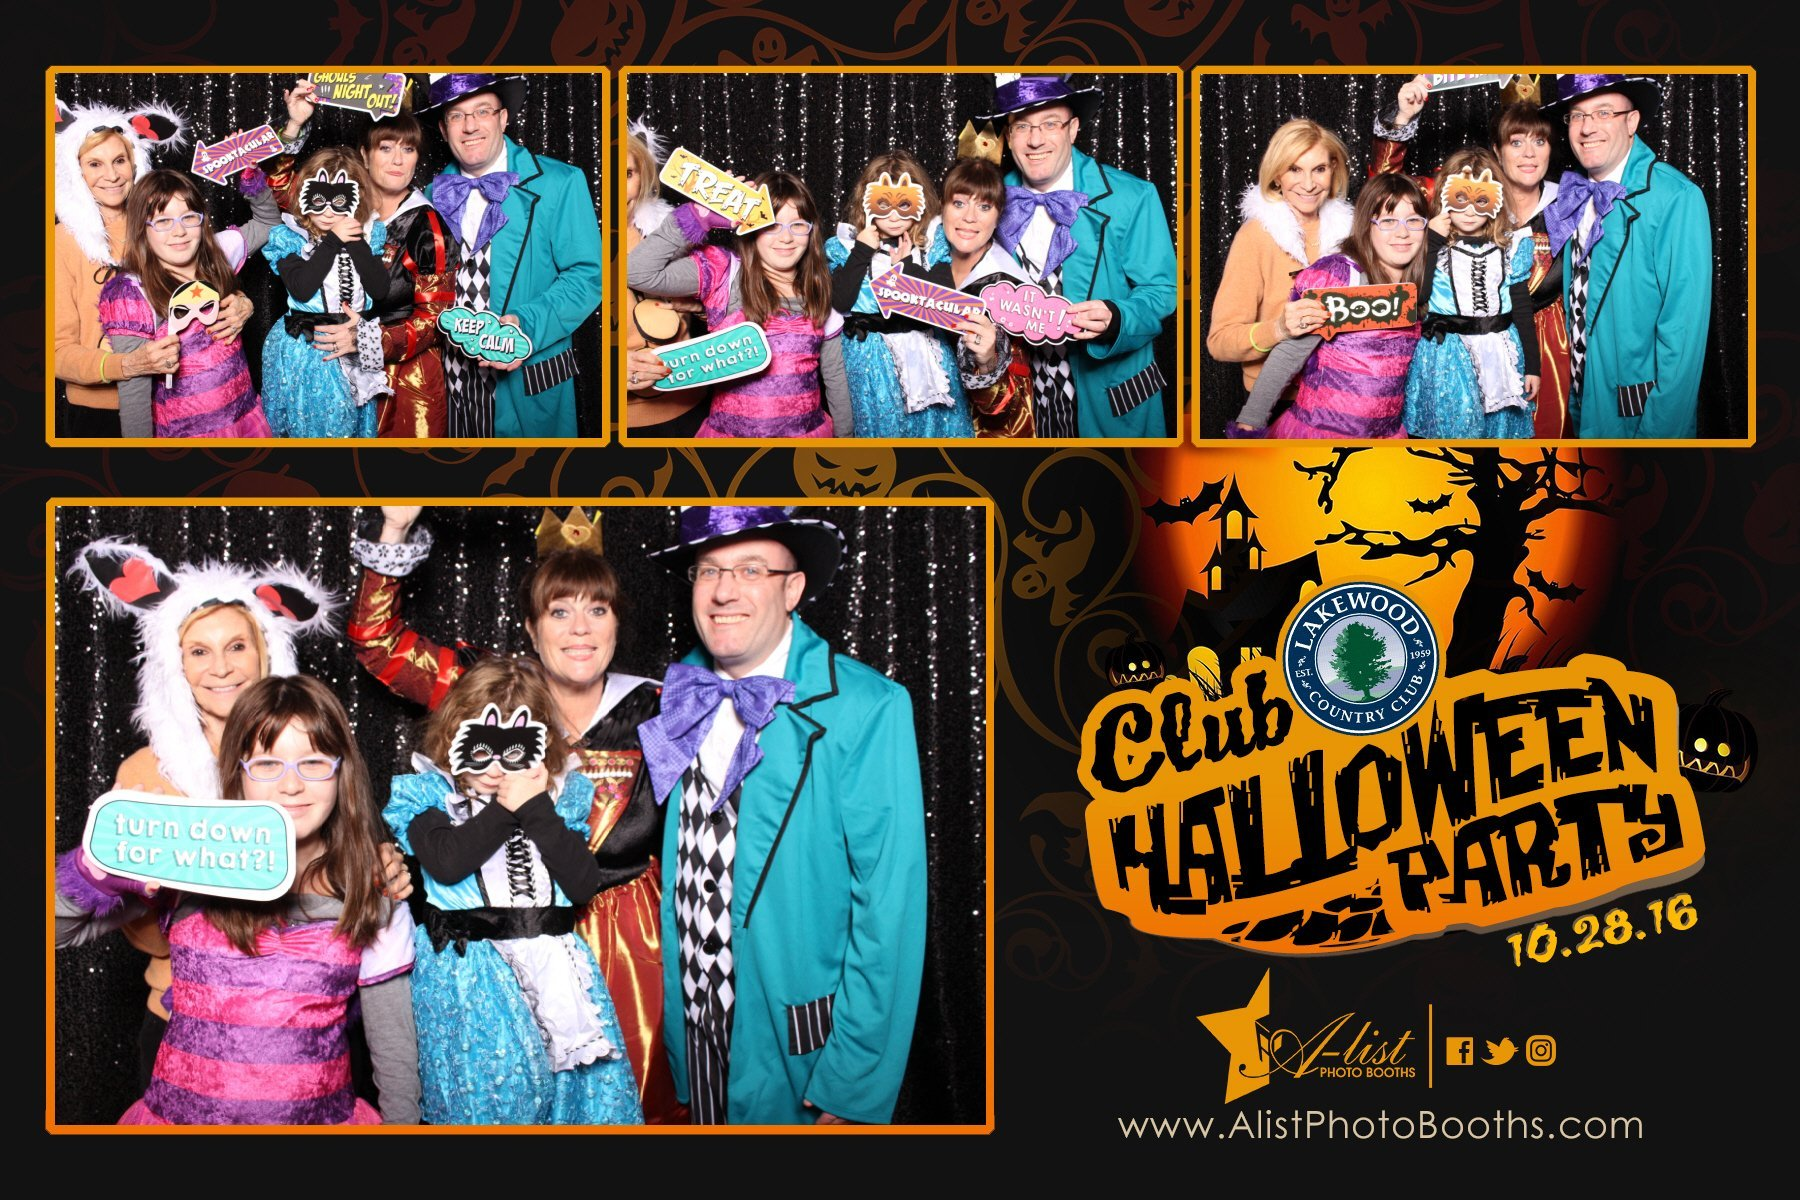 Quality photo booths rentals in DC, MD and VA and beyond.